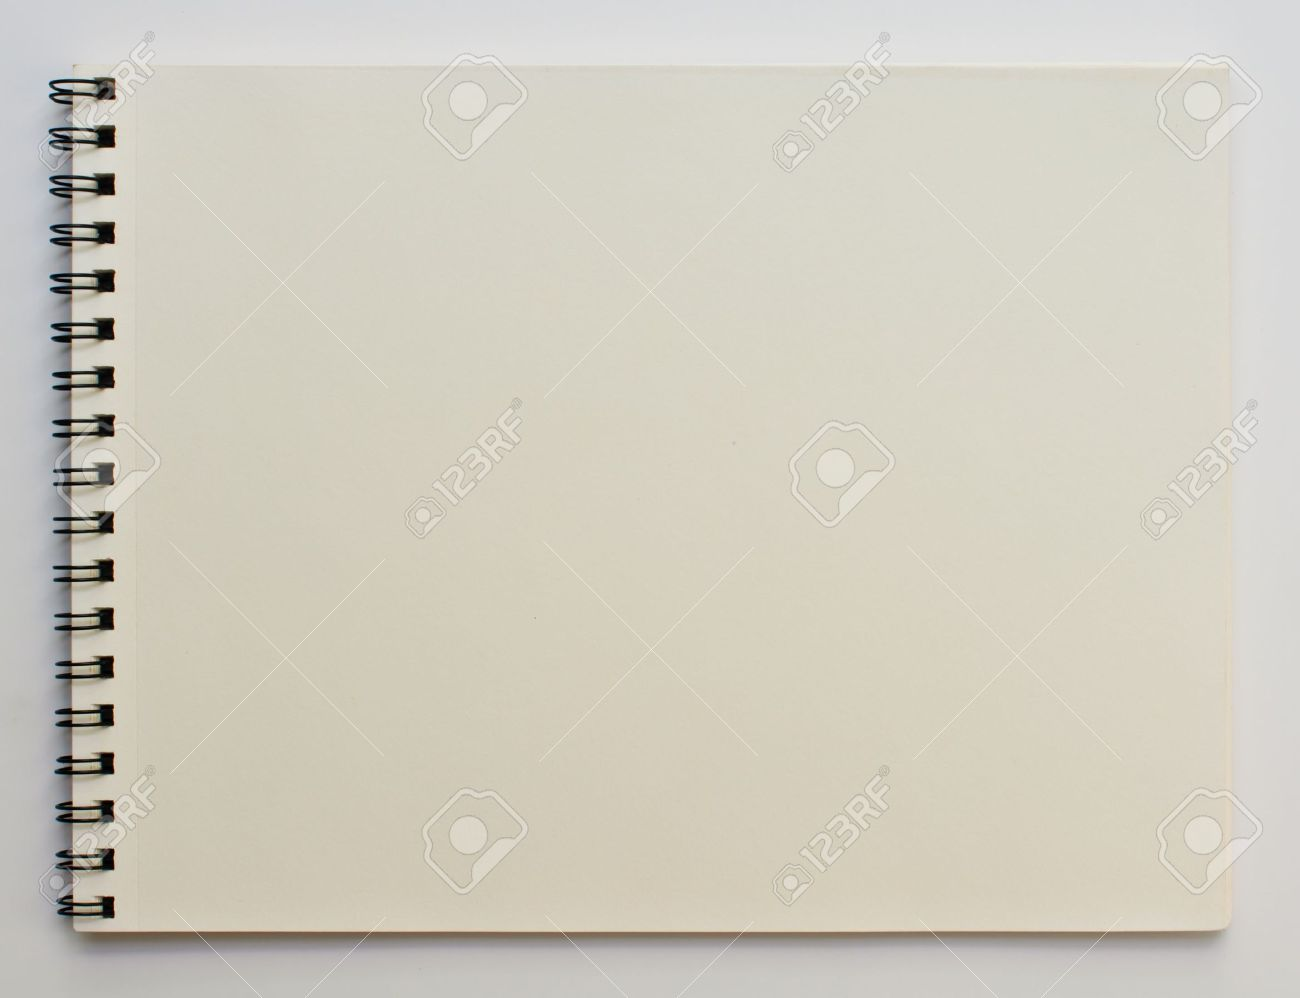 drawing book background stock photo picture and royalty free image